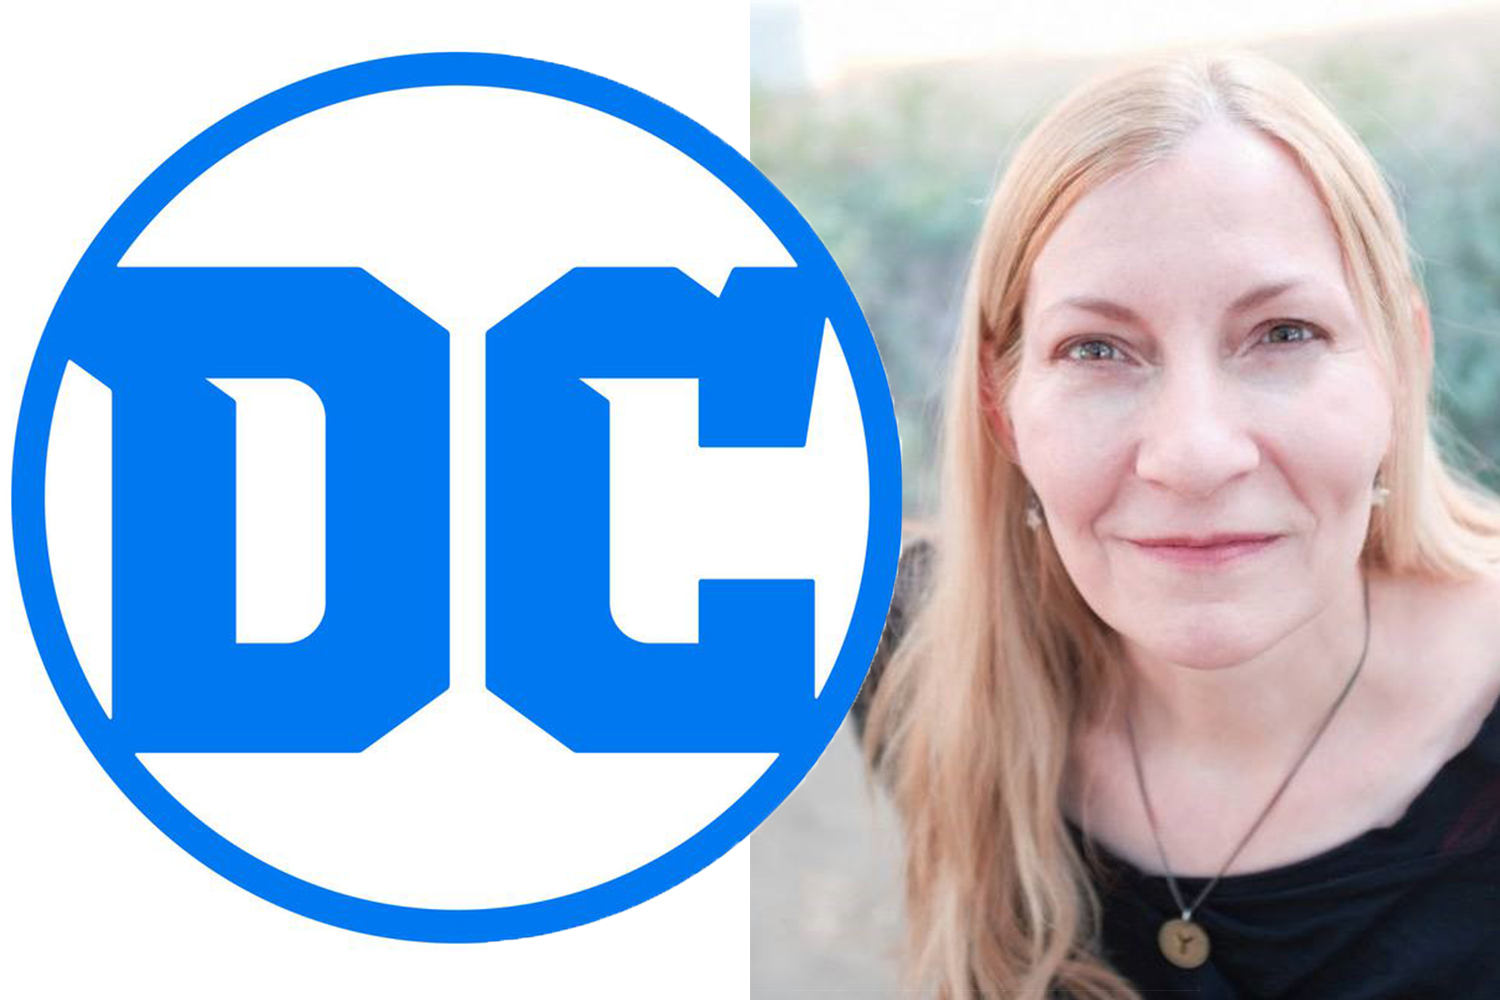 DC Comics announces Marie Javins promoted to Editor in Chief